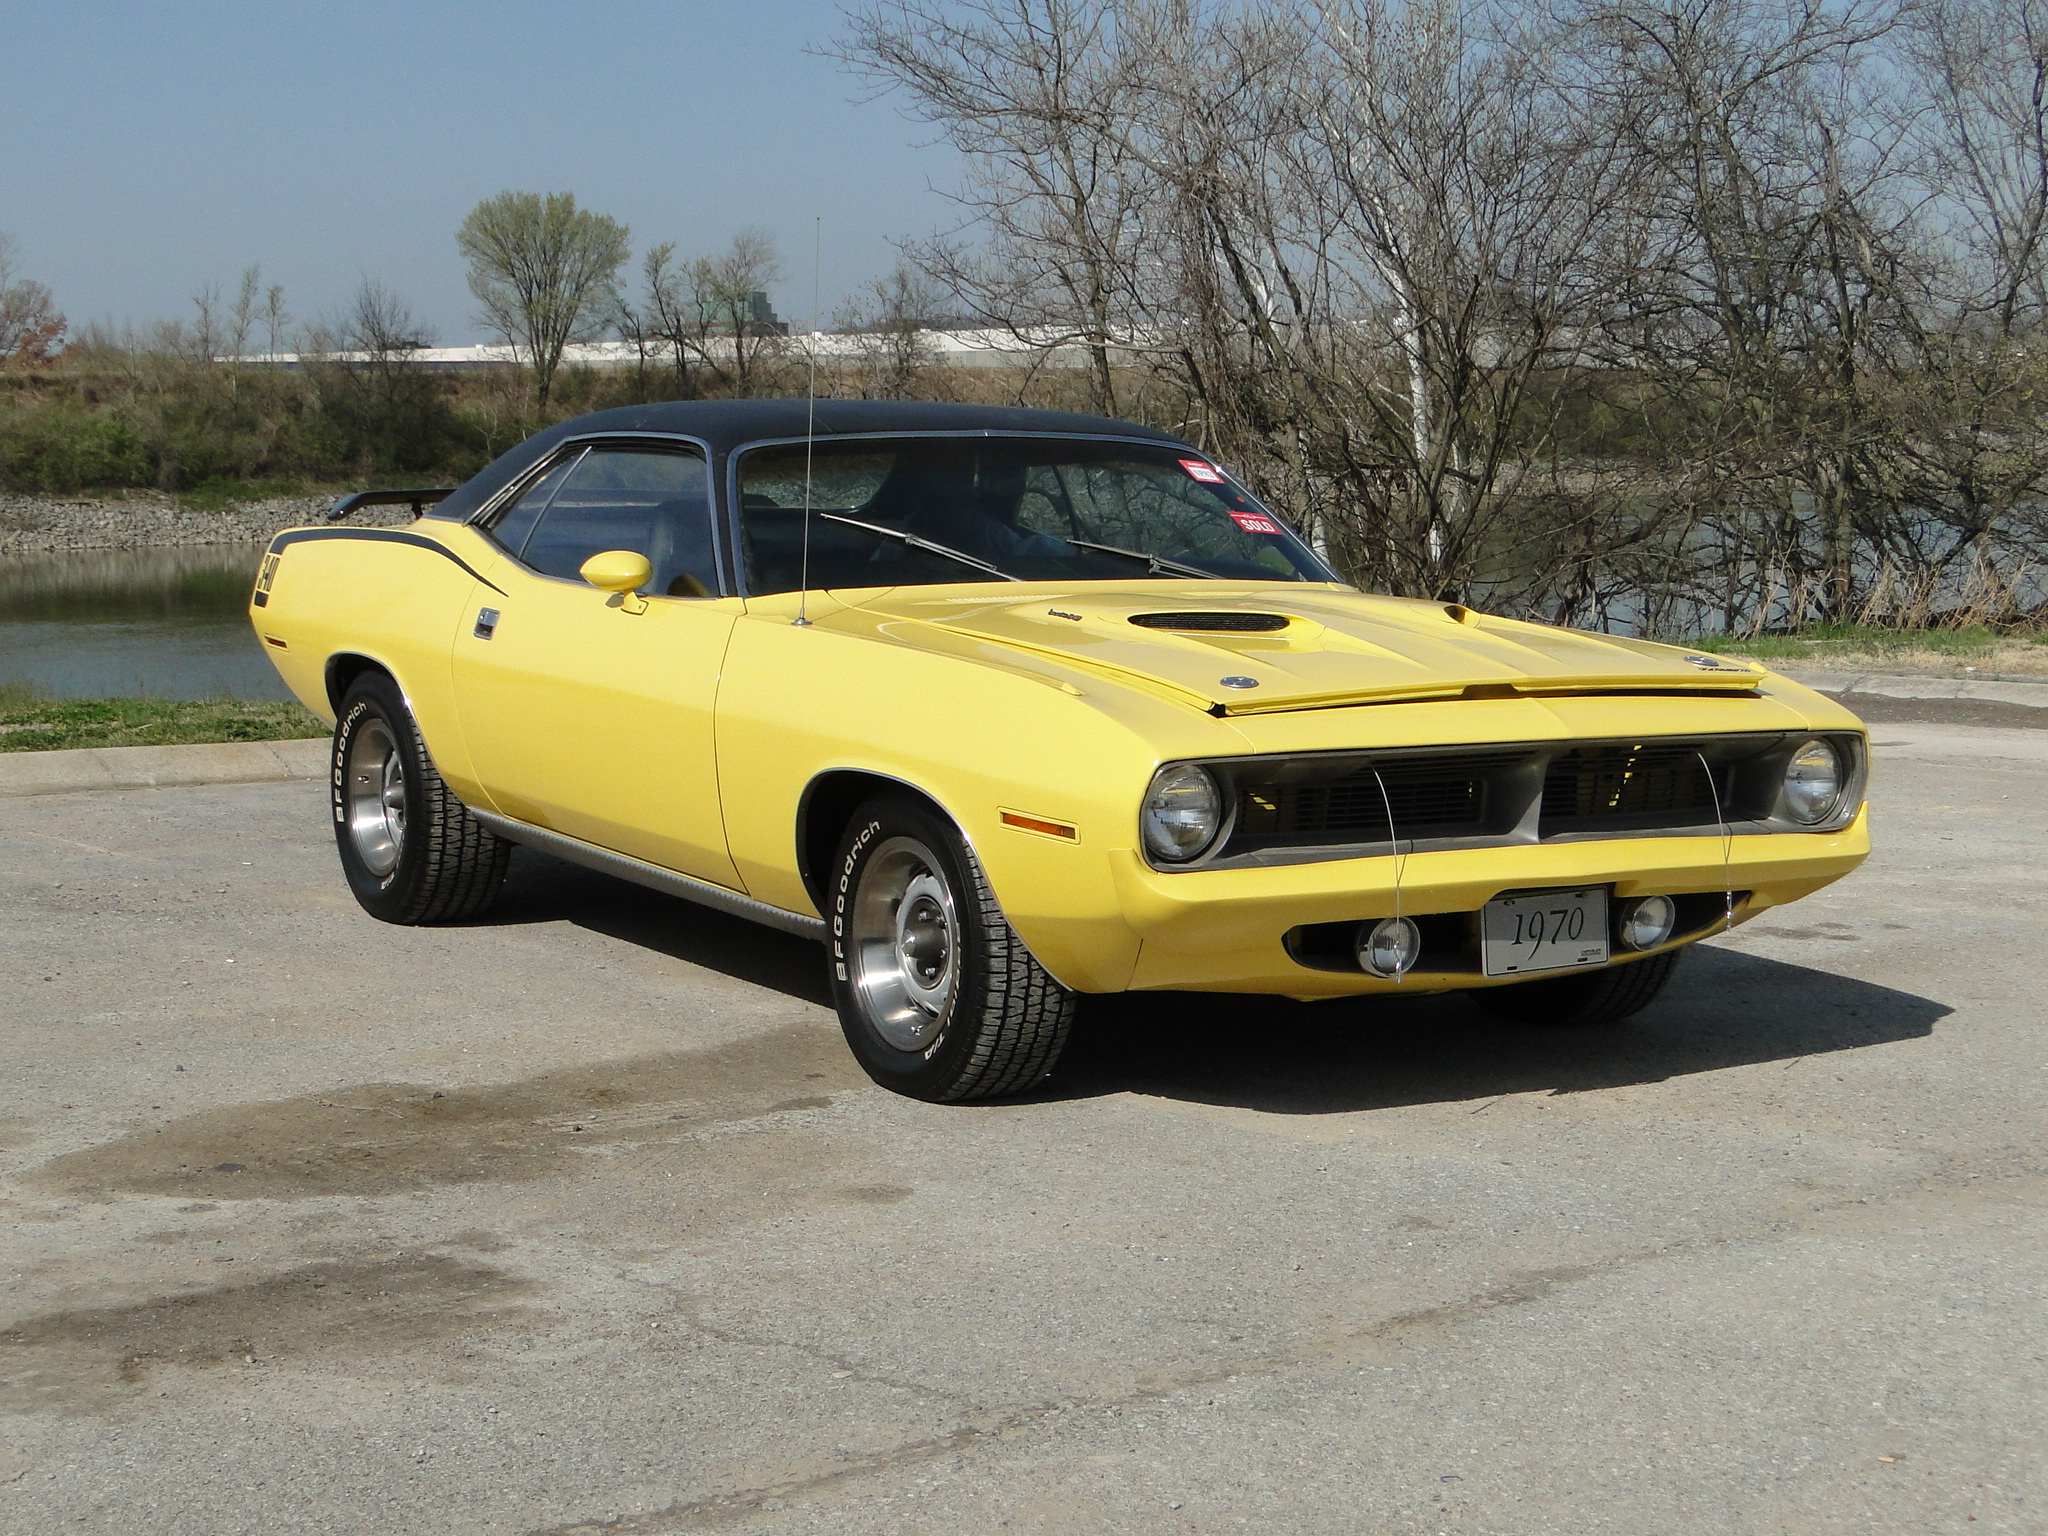 1970 Plymouth Cuda Rmation And Photos Momentcar HD Wallpapers Download free images and photos [musssic.tk]